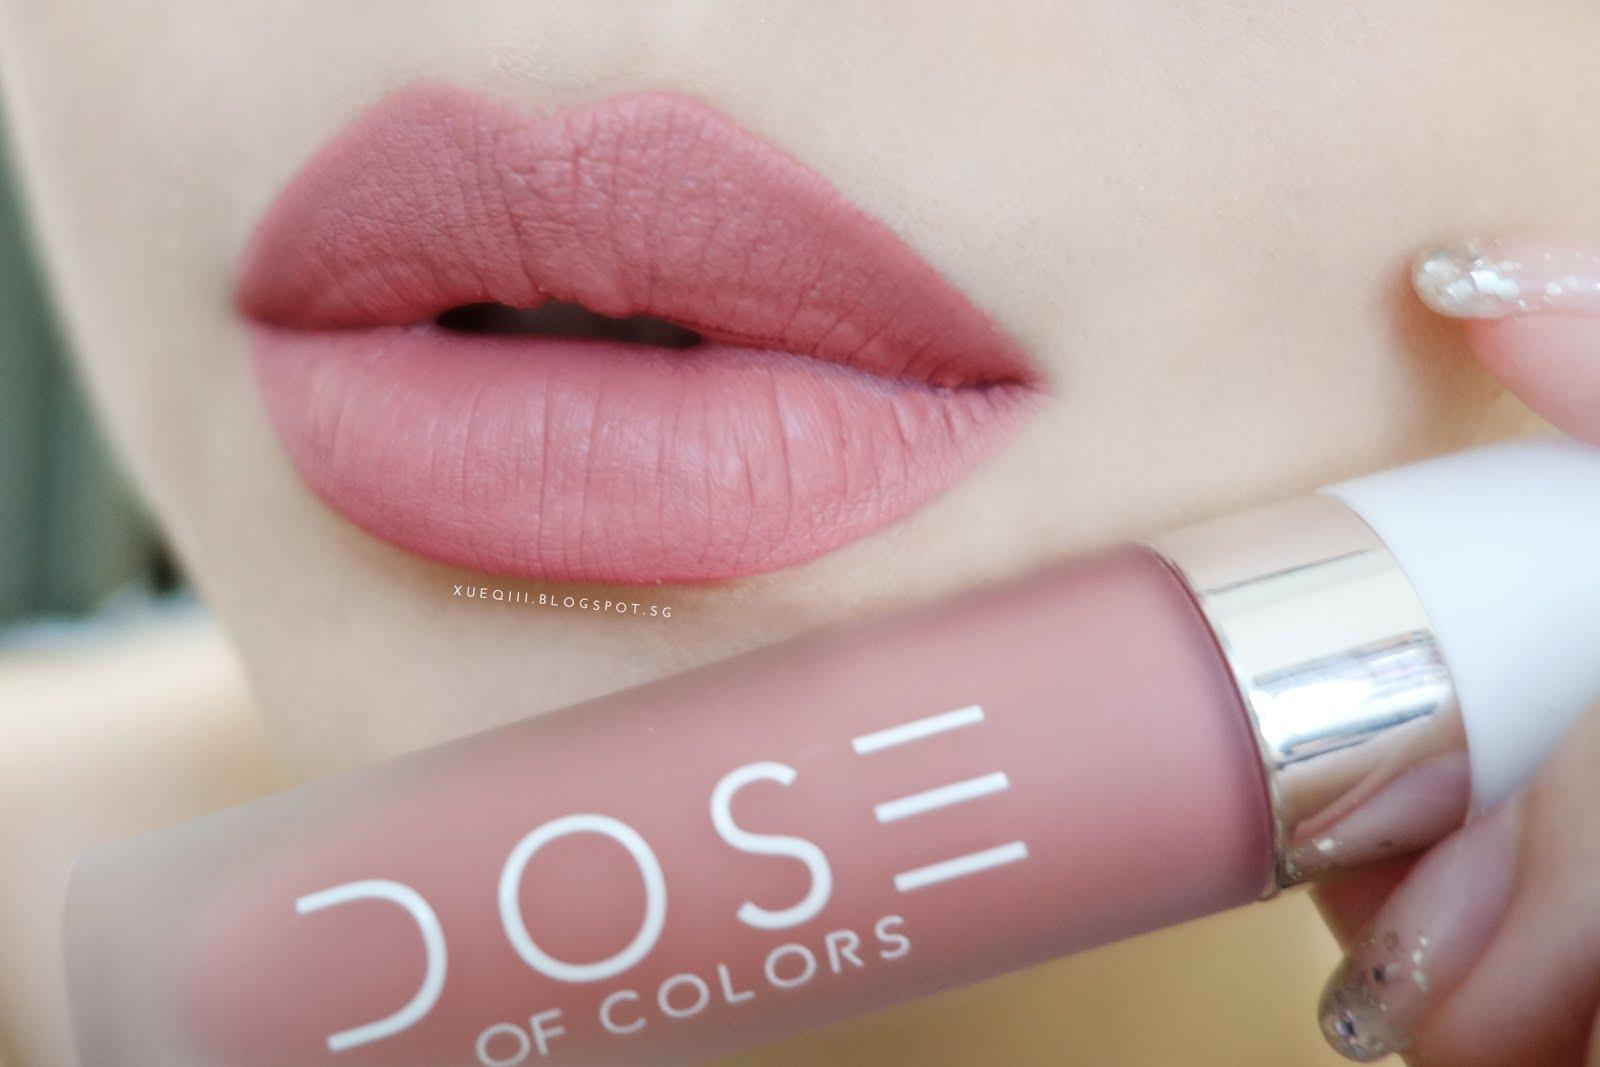 Dose of Colors Lipstick Matte Barre